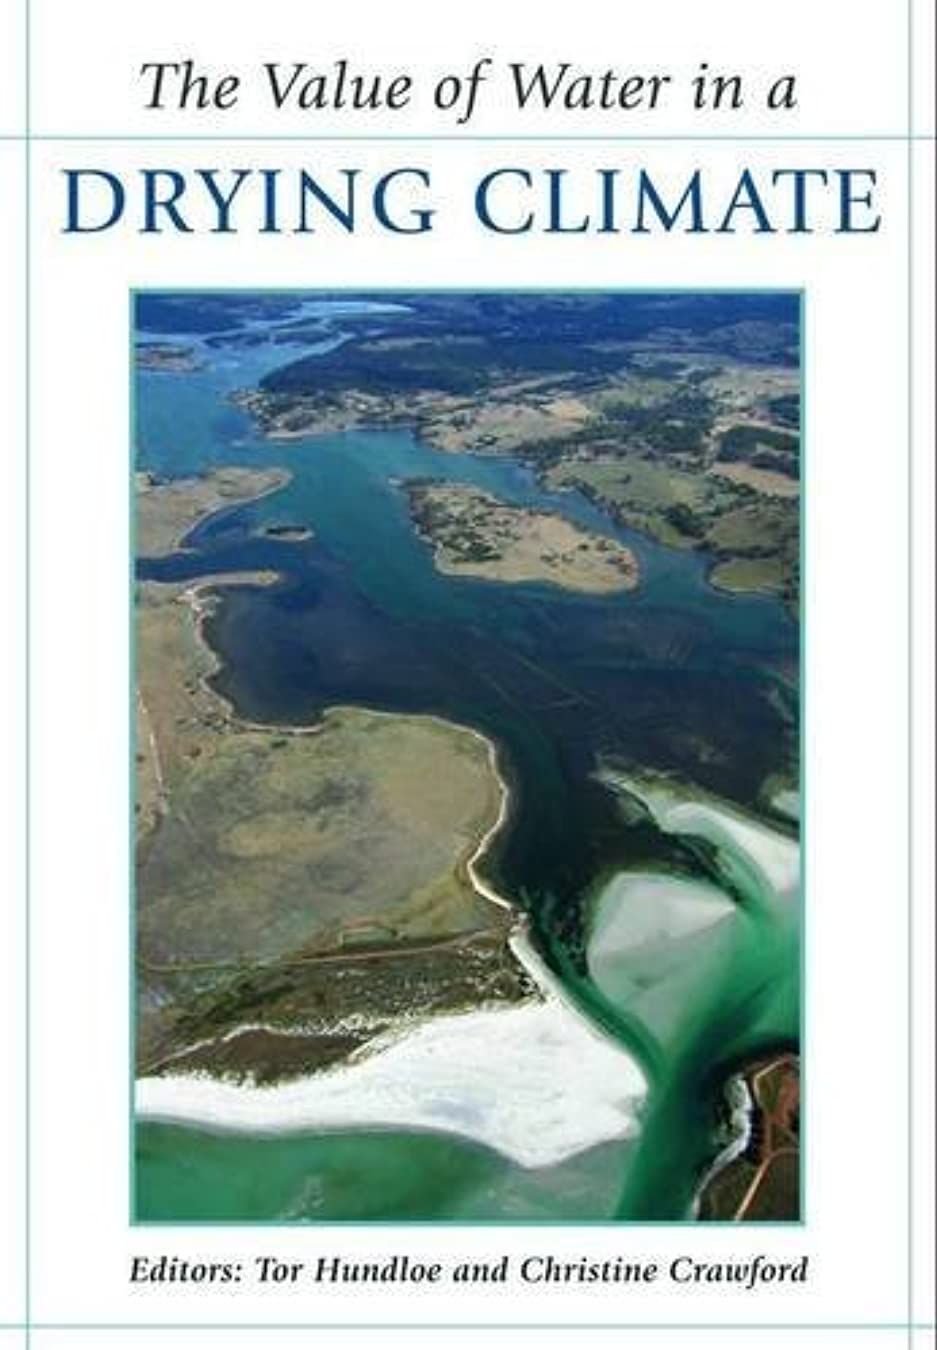 中毒マーガレットミッチェルに負けるThe Value of Water in a Drying Climate (English Edition)